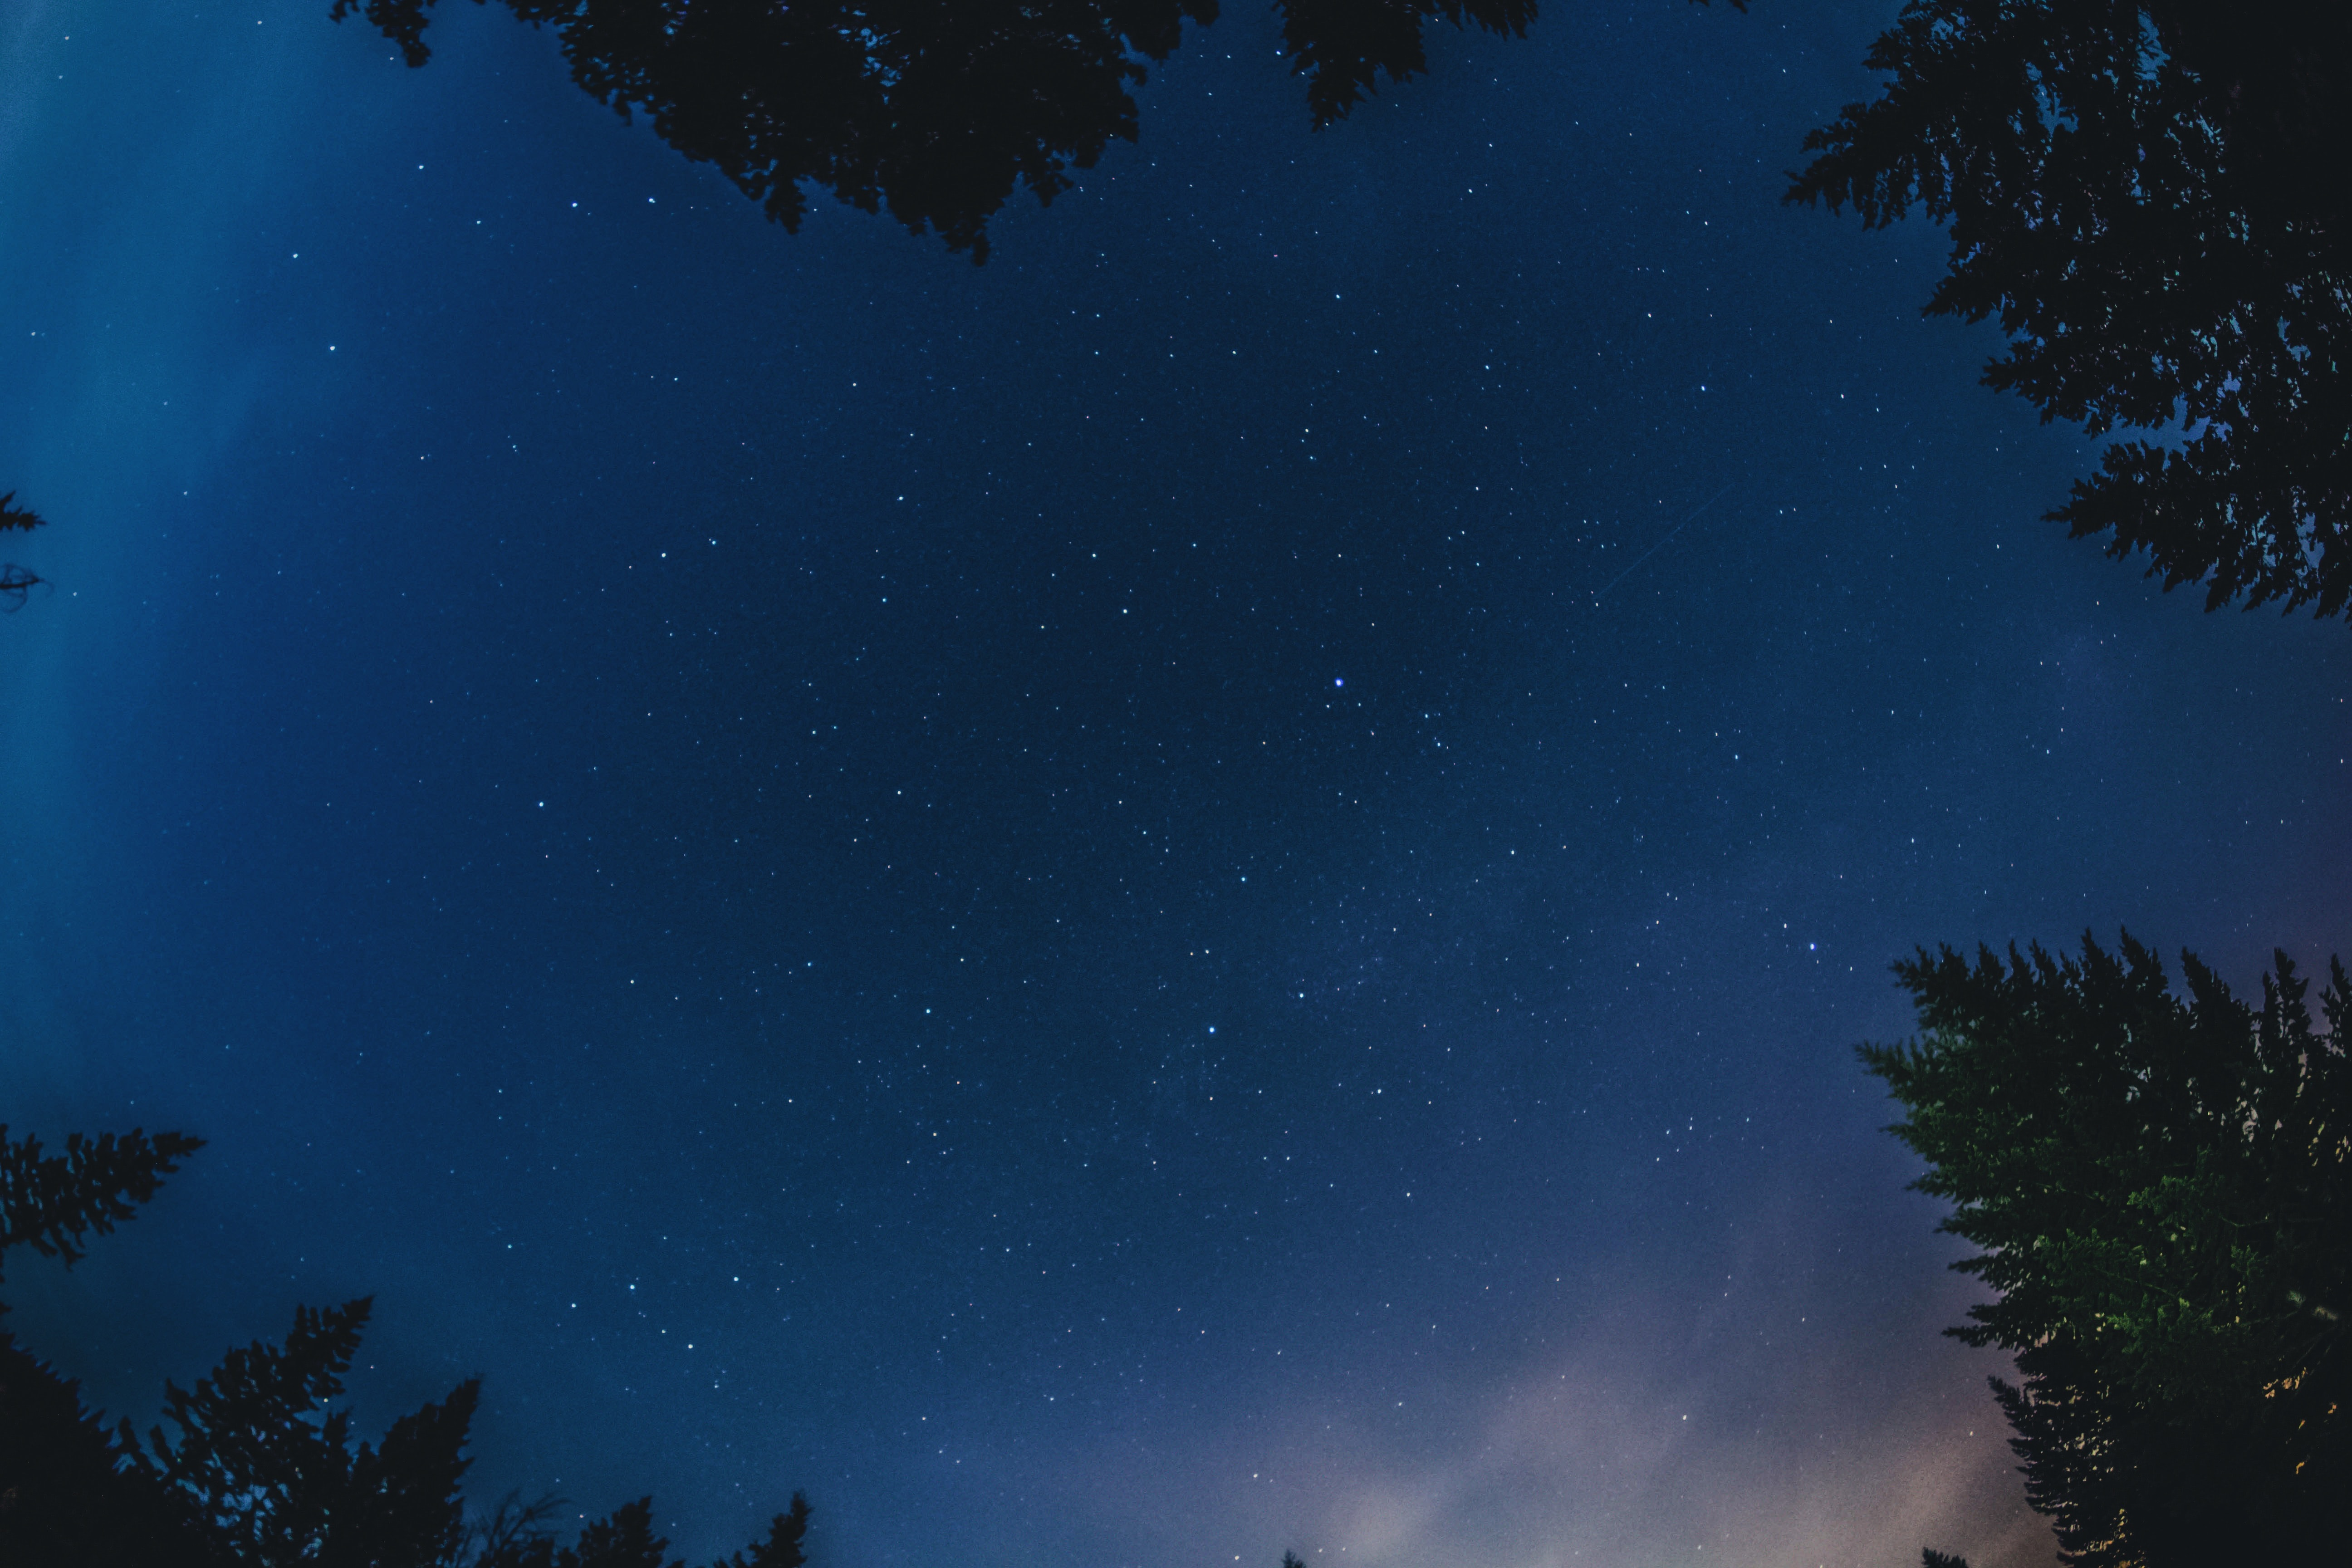 Looking up at the starry night sky over the pine trees in Banff